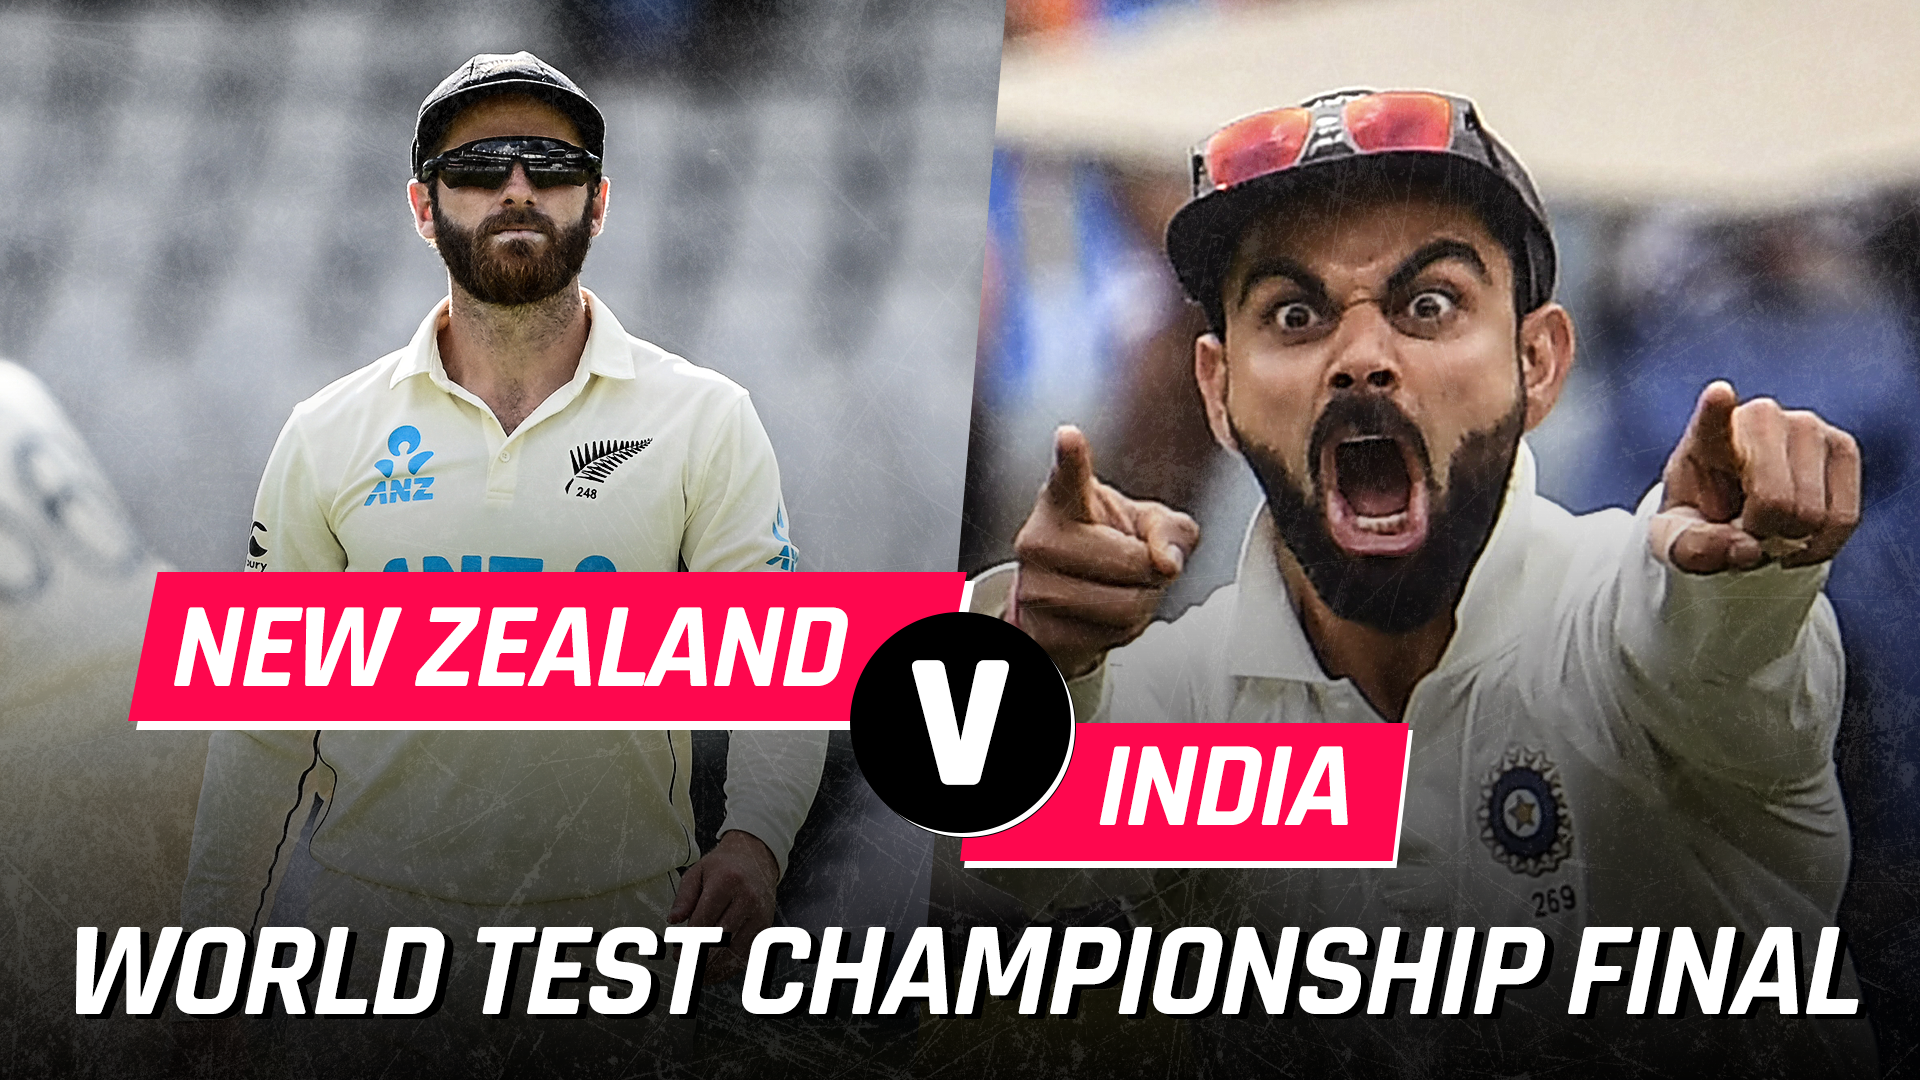 World Test Championship Final: India v New Zealand, how to watch in Australia, prize money, schedule, teams, odds